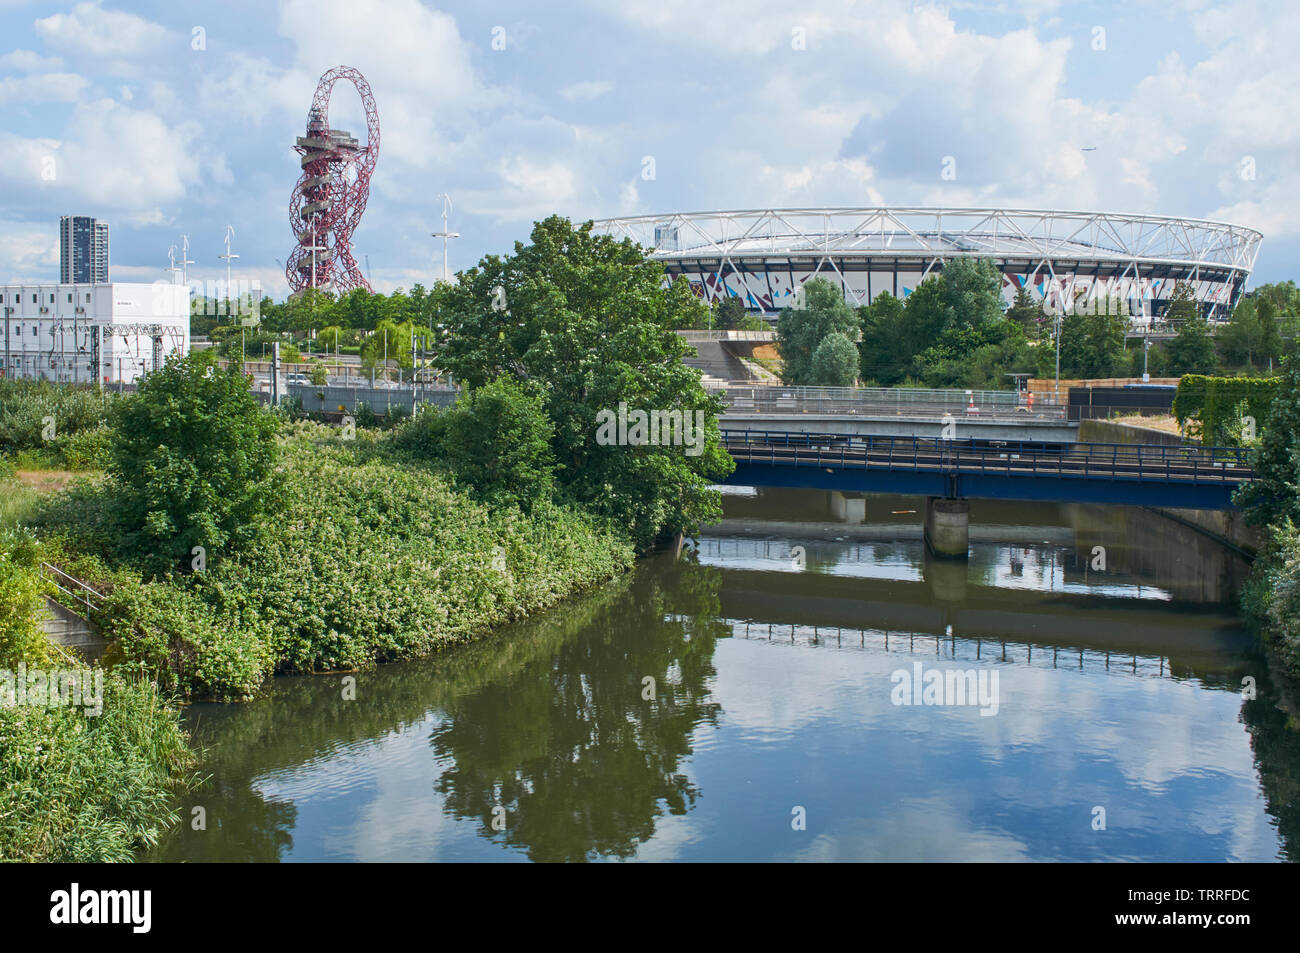 The River Lea at London Olympic Park, with the London Stadium and the ArcelorMittal Orbit in background Stock Photo